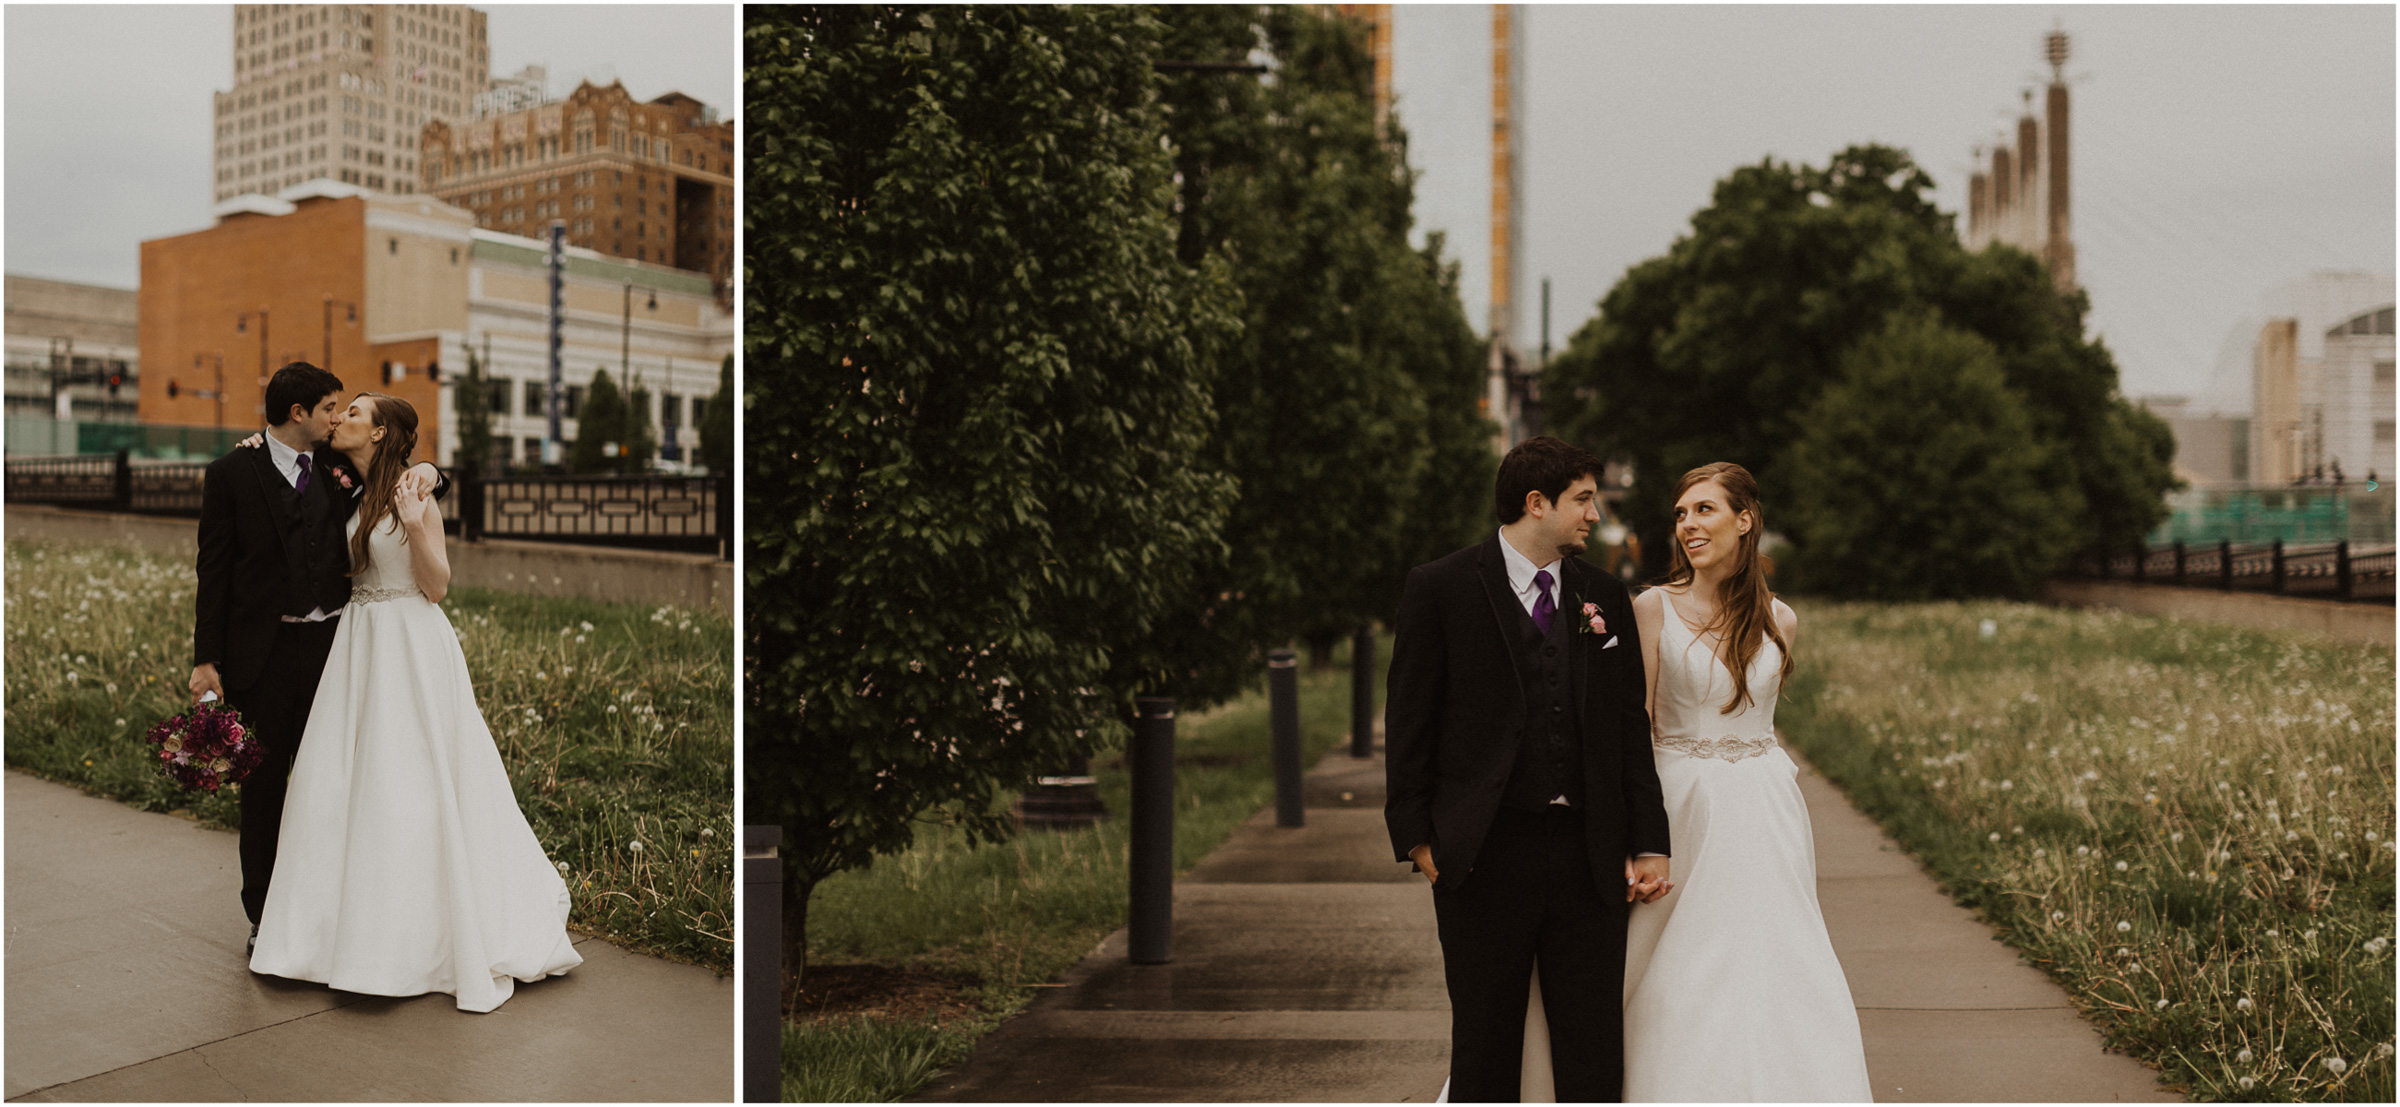 alyssa barletter photography terrace on grand skyline kansas city kc wedding photographer-24.jpg